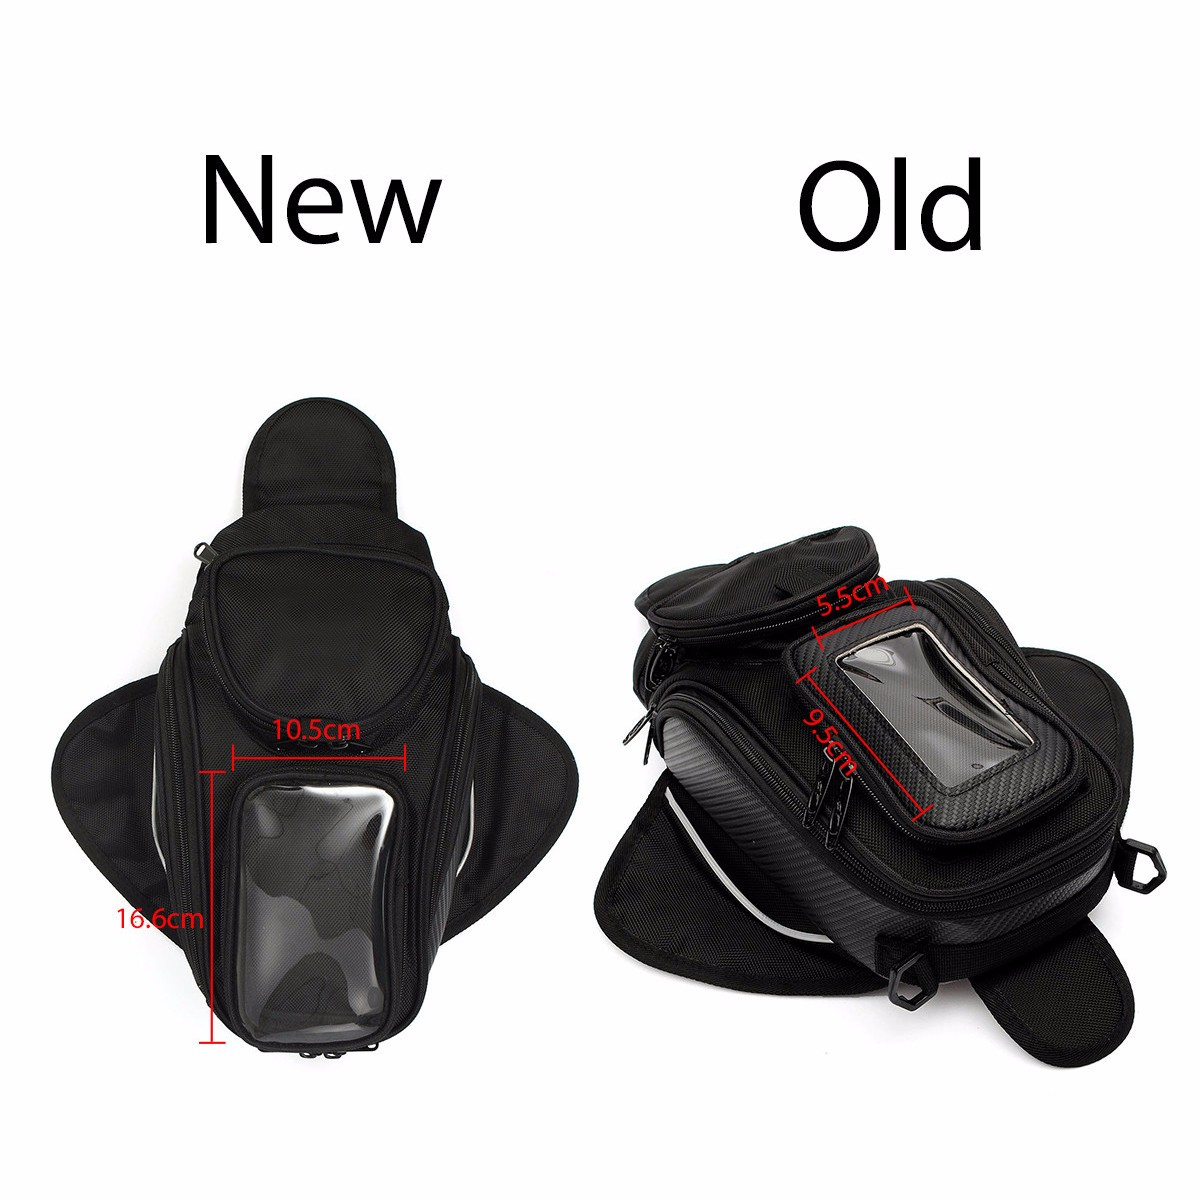 Motorcycle Oil Fuel Tank Bag Magnetic Saddle Bag with Bigger Phone Window 36x48.5cm